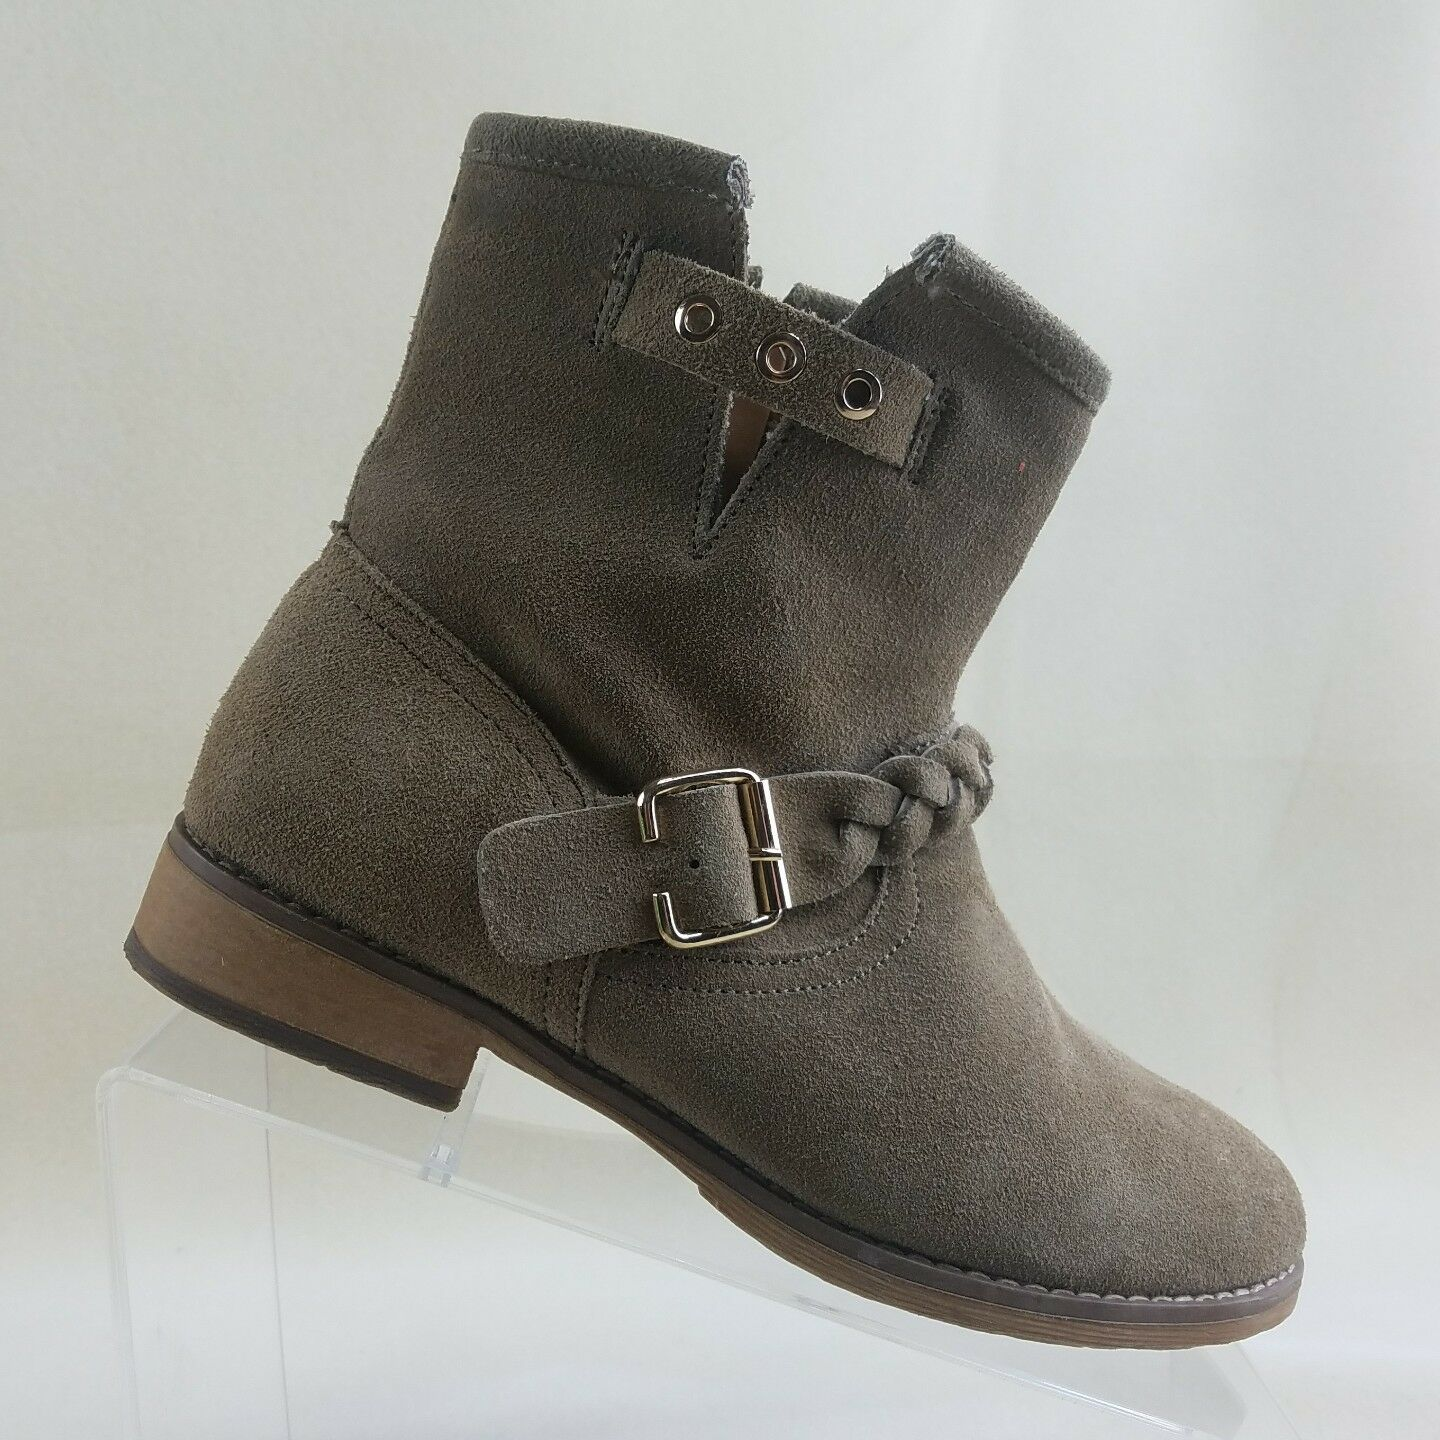 Skechers Womens Size 6.5 Tan Side Zip Ankle Boots Booties Suede  #B78